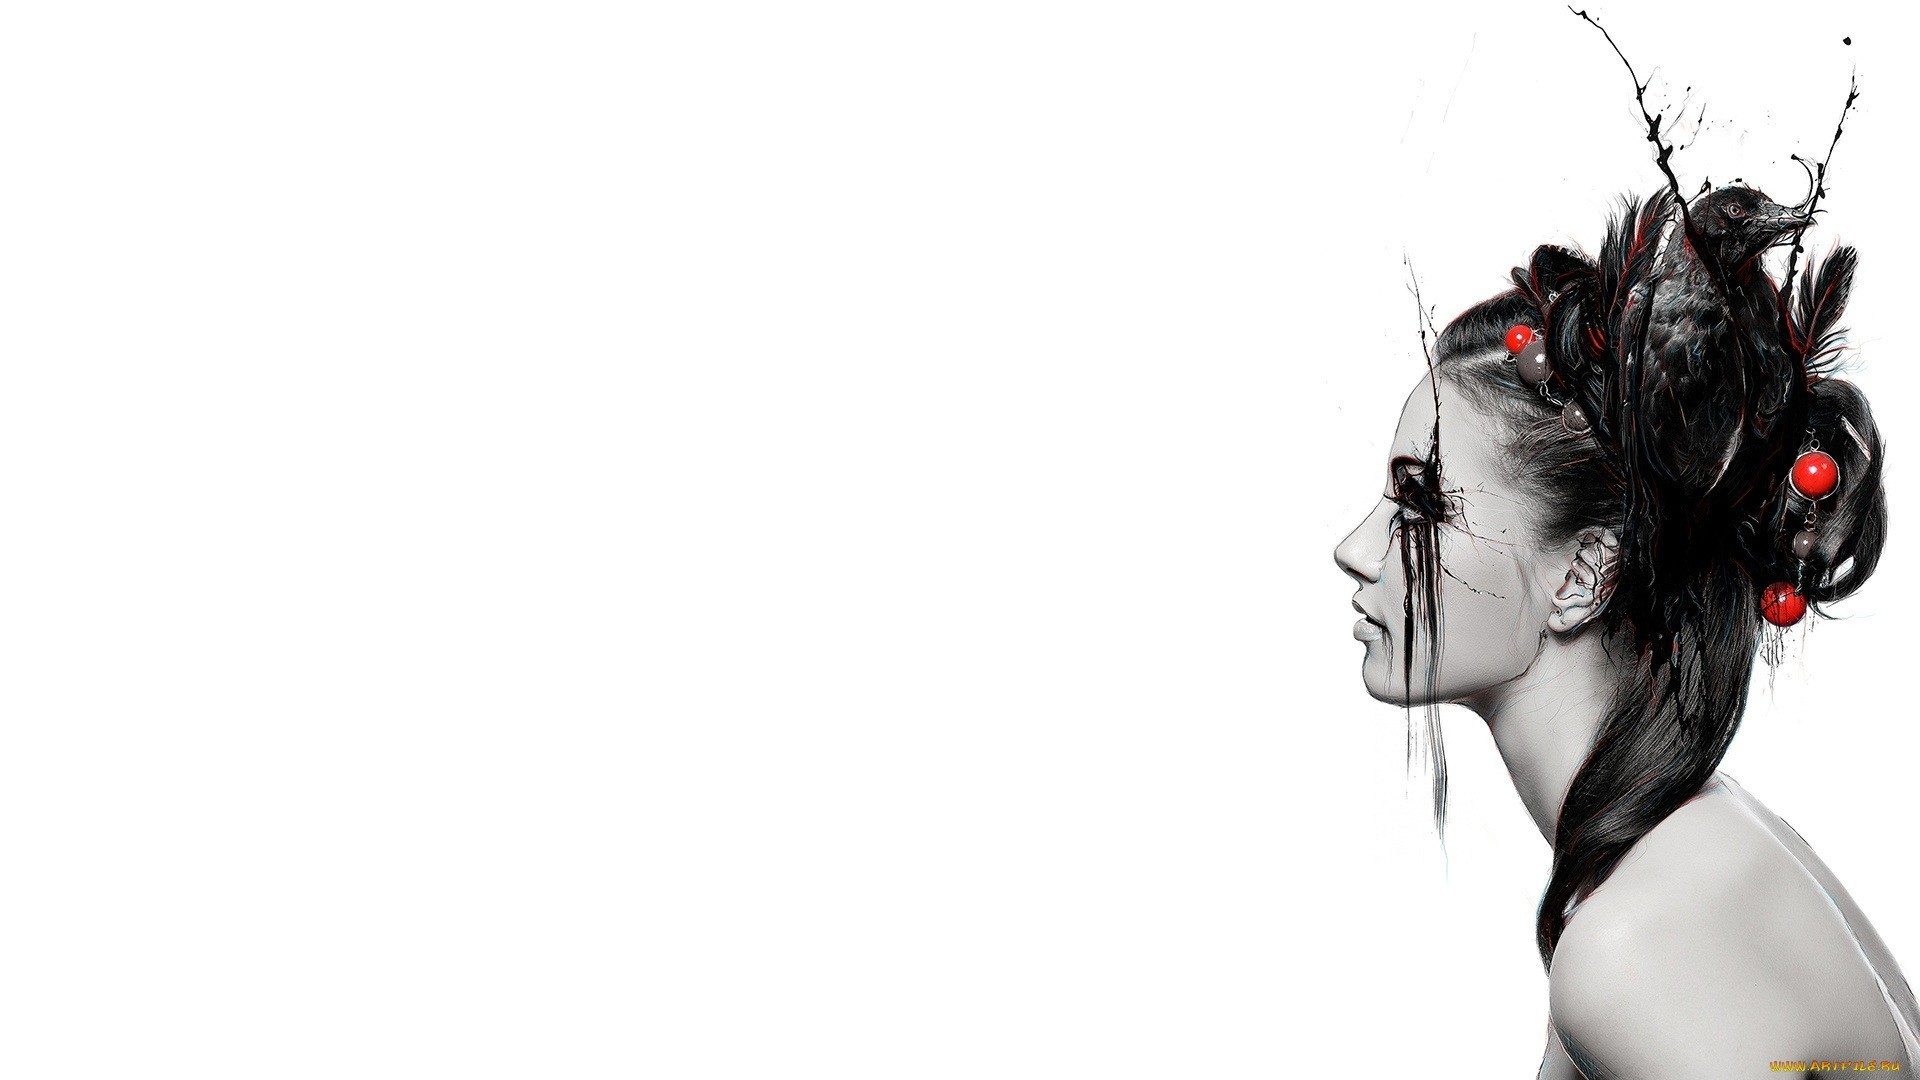 Model full hd wallpaper and background image 1920x1080 - White abstract background hd ...